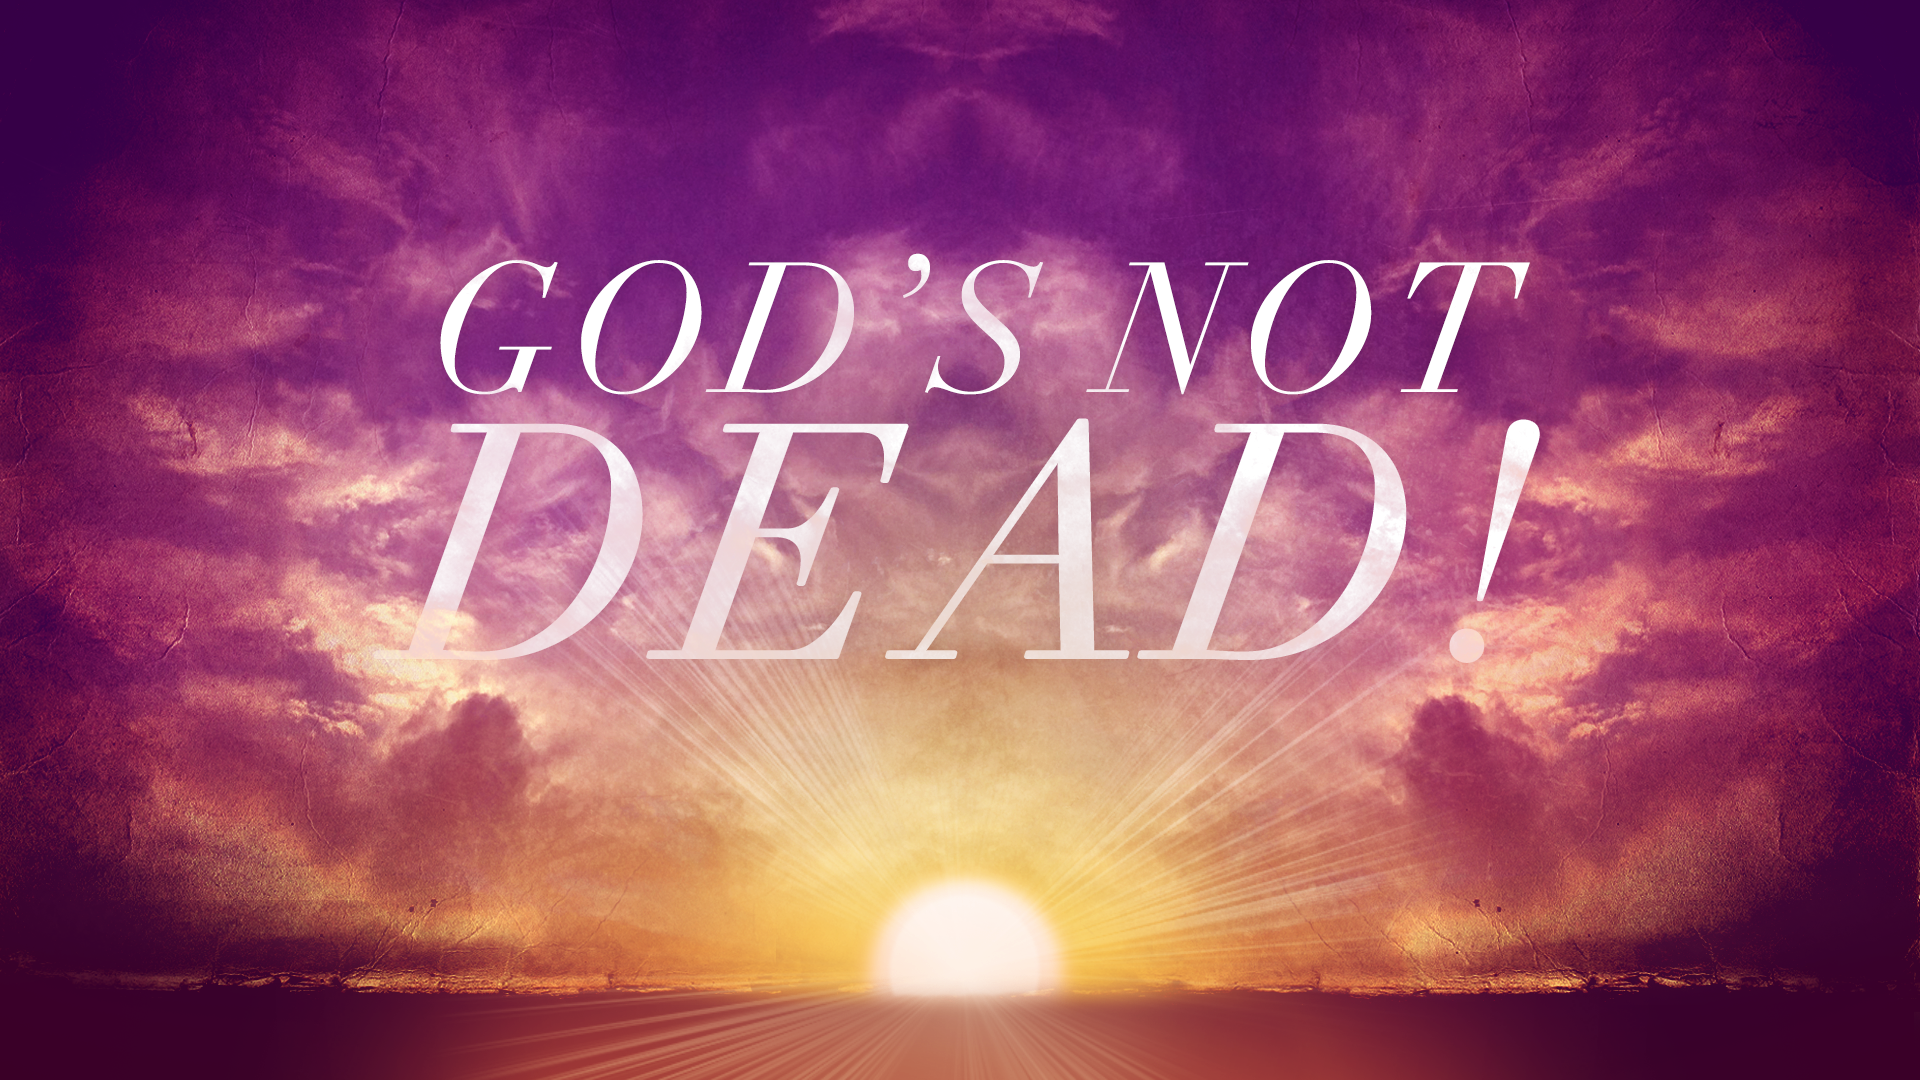 Great God Is Not Quotes. QuotesGram